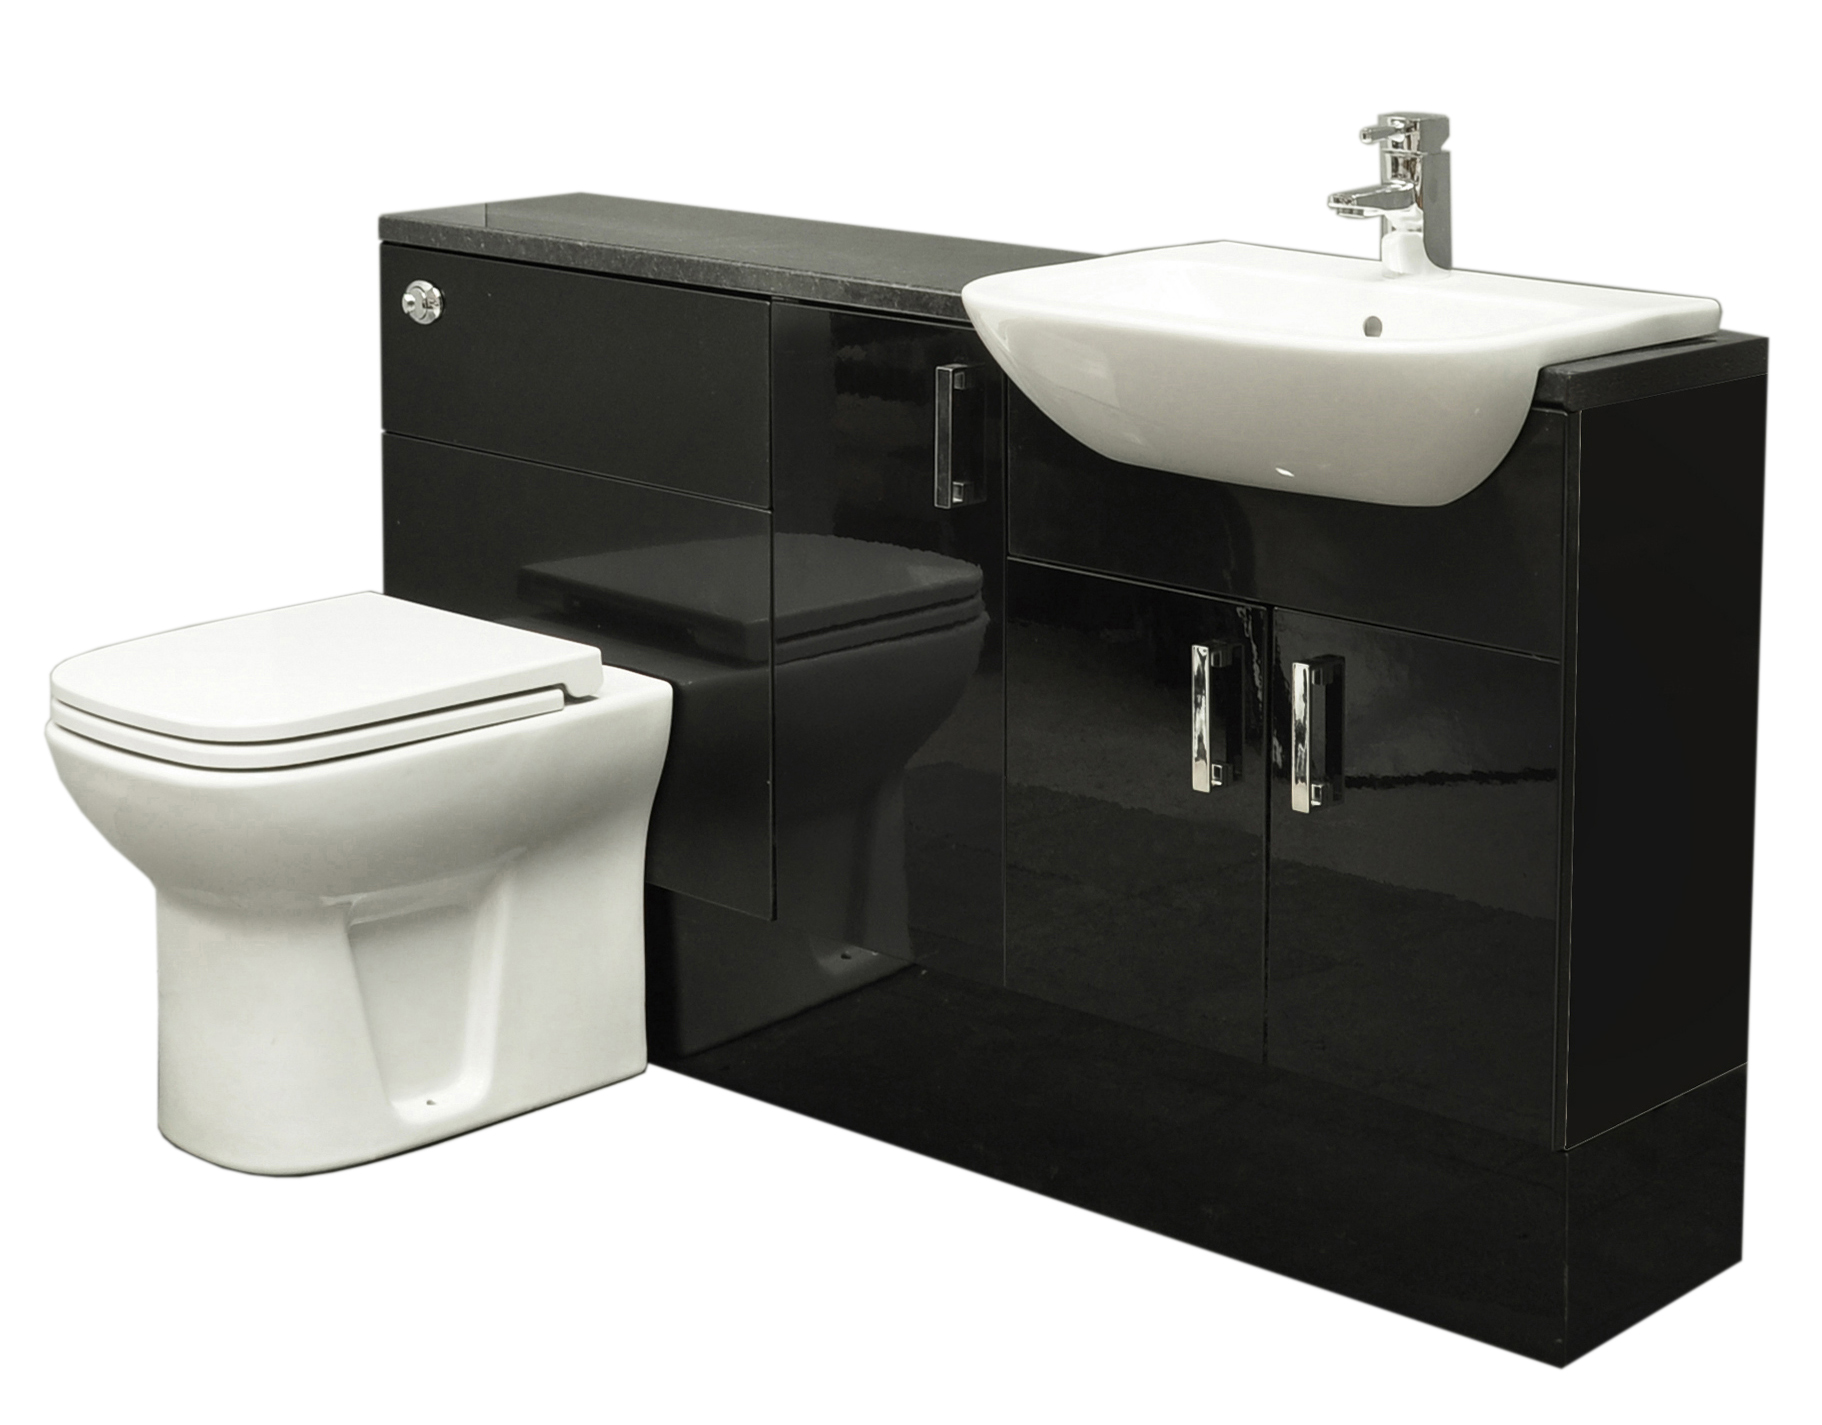 Toilet Sink Price : ... -Gloss-Fitted-Bathroom-Furniture-1300mm-Basin-Sink-Toilet-Chrome-Tap